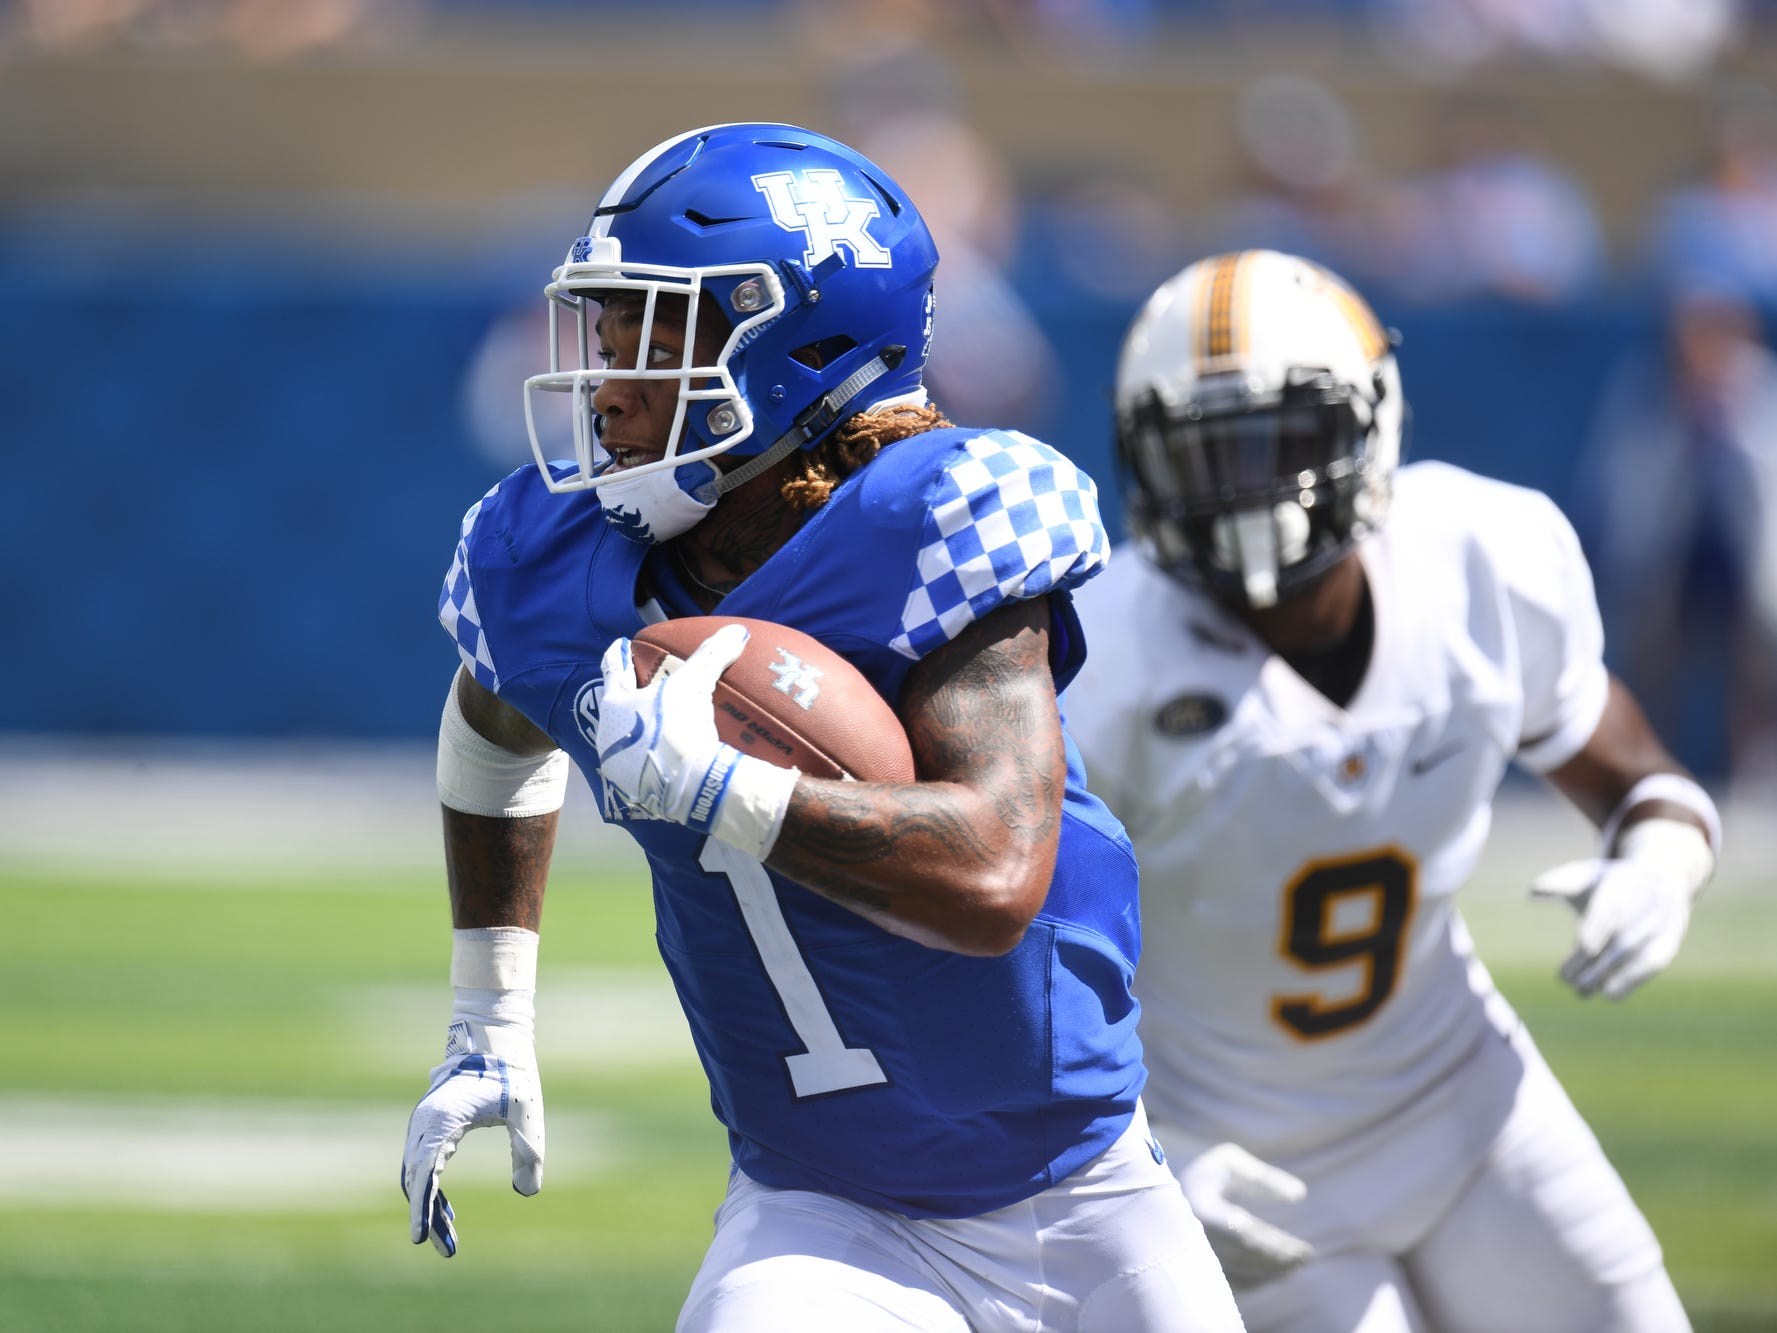 UK wide receiver Lynn Bowden Jr. runs after the catch during the University of Kentucky football game against Murray State at Kroger Field in Lexington, Kentucky, on Saturday, Sept. 15, 2018.